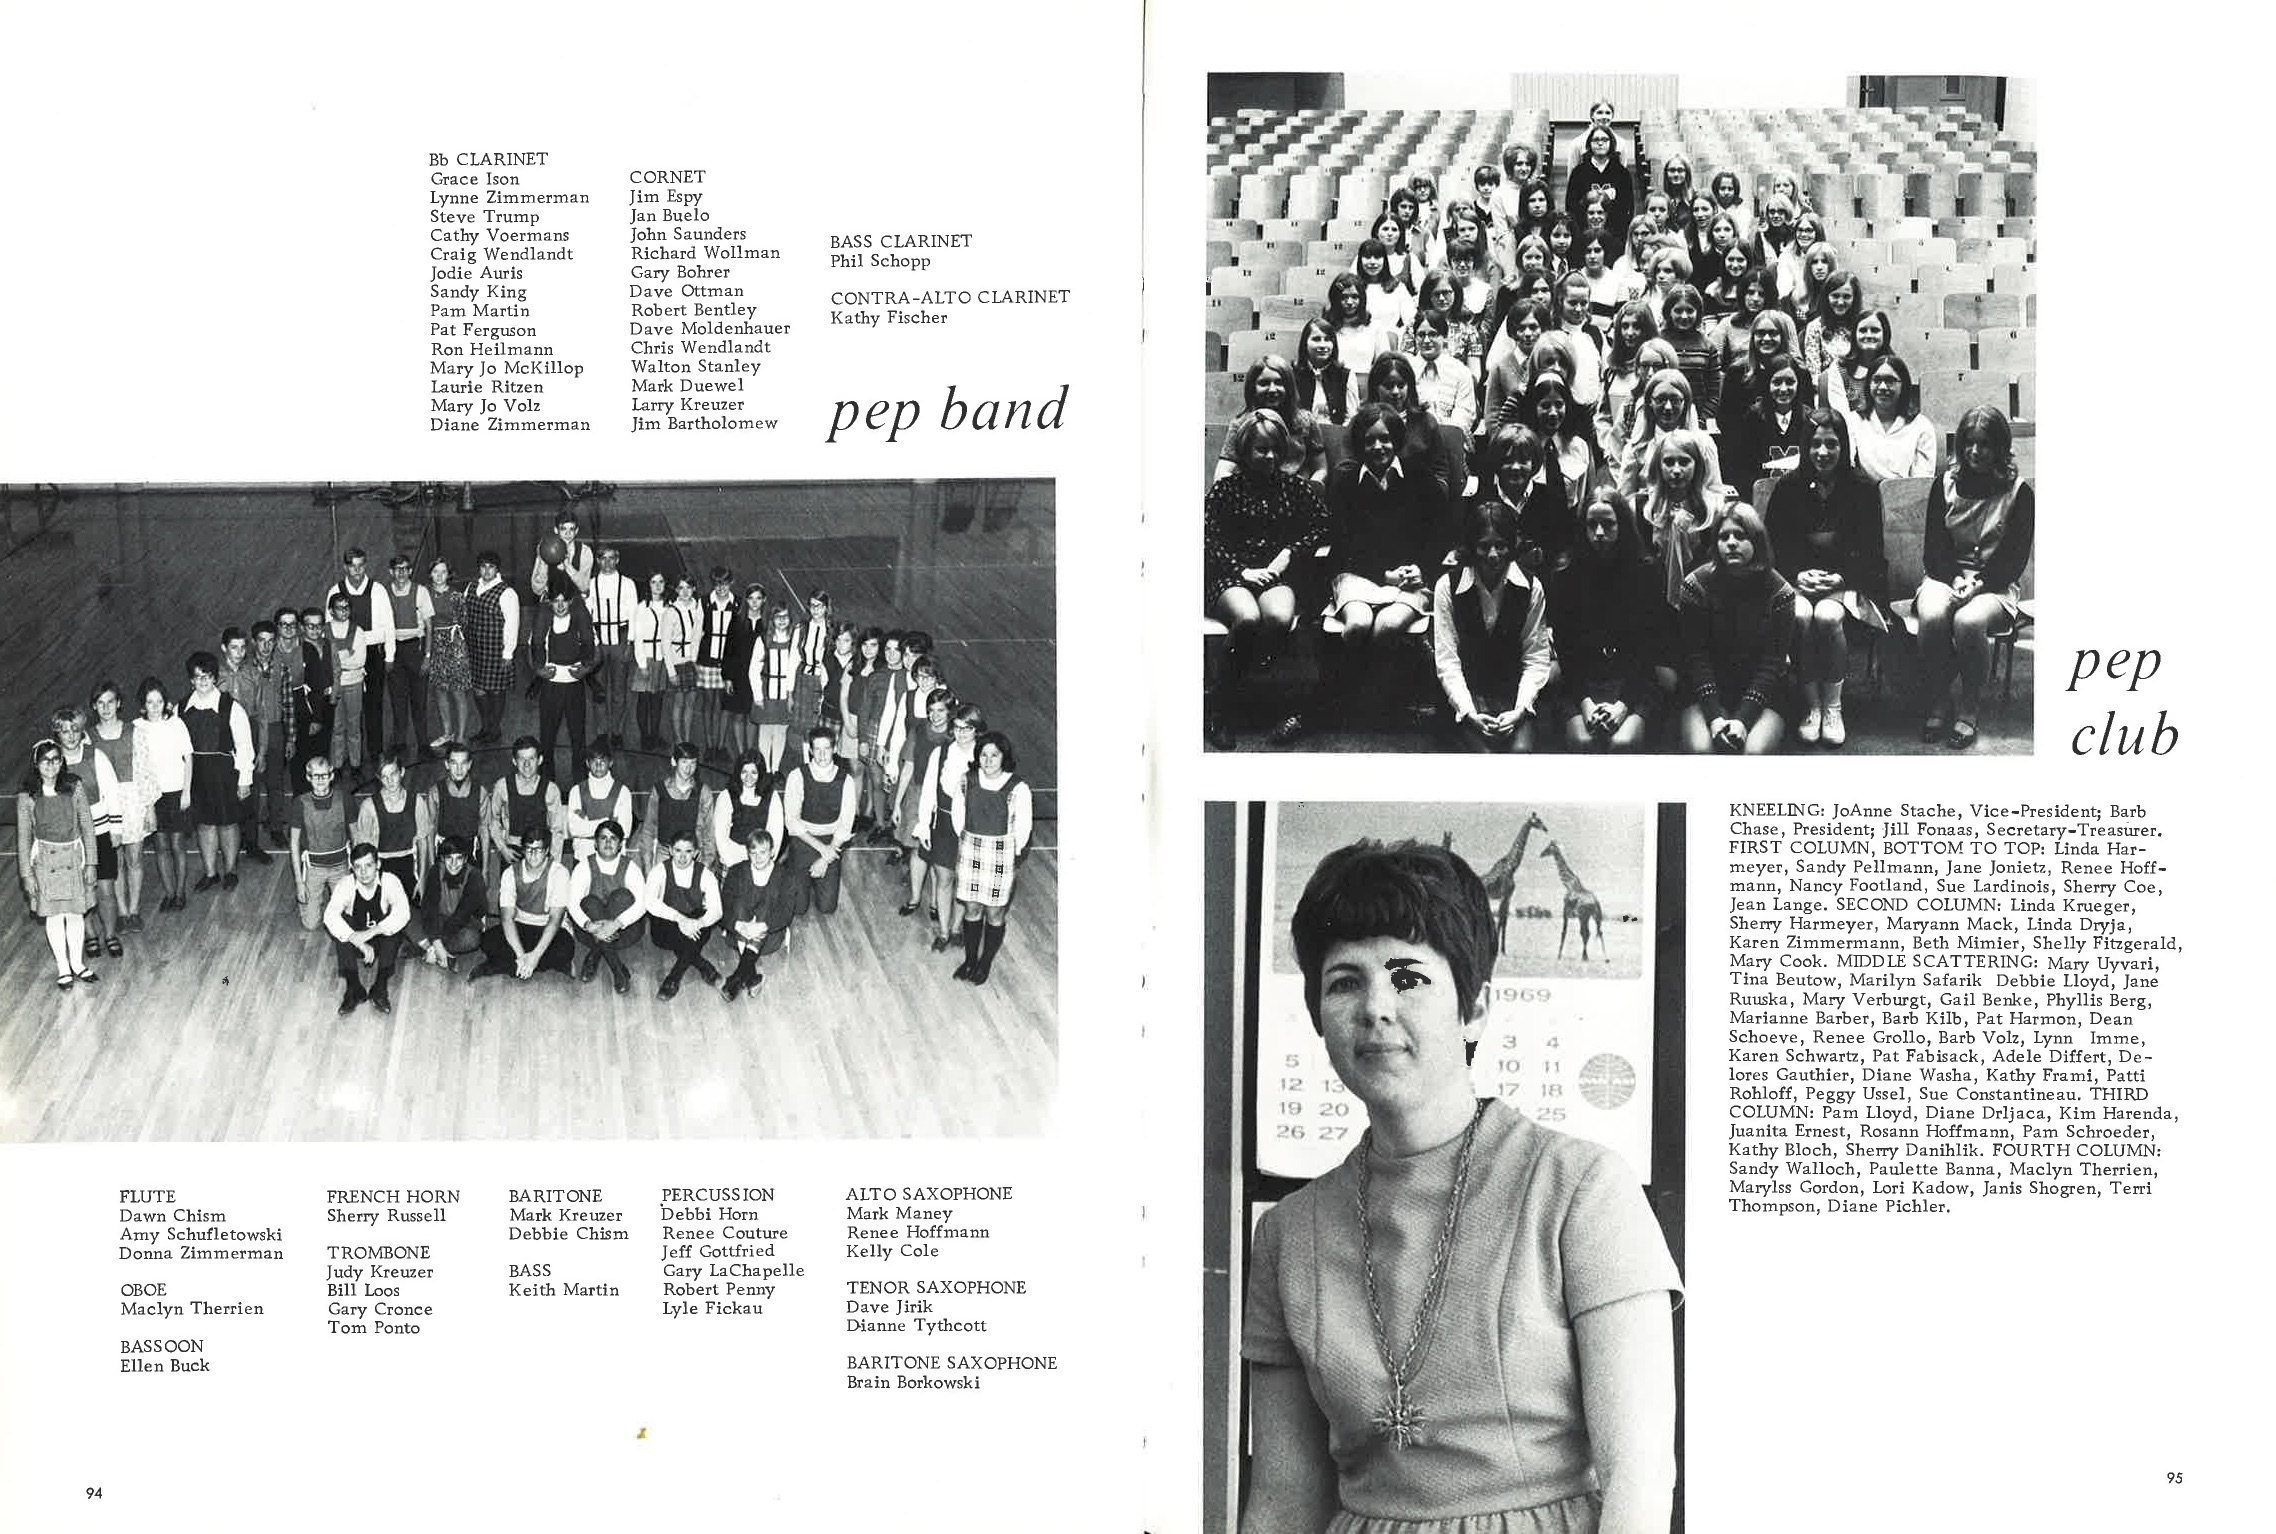 1970_Yearbook_94-95.jpg